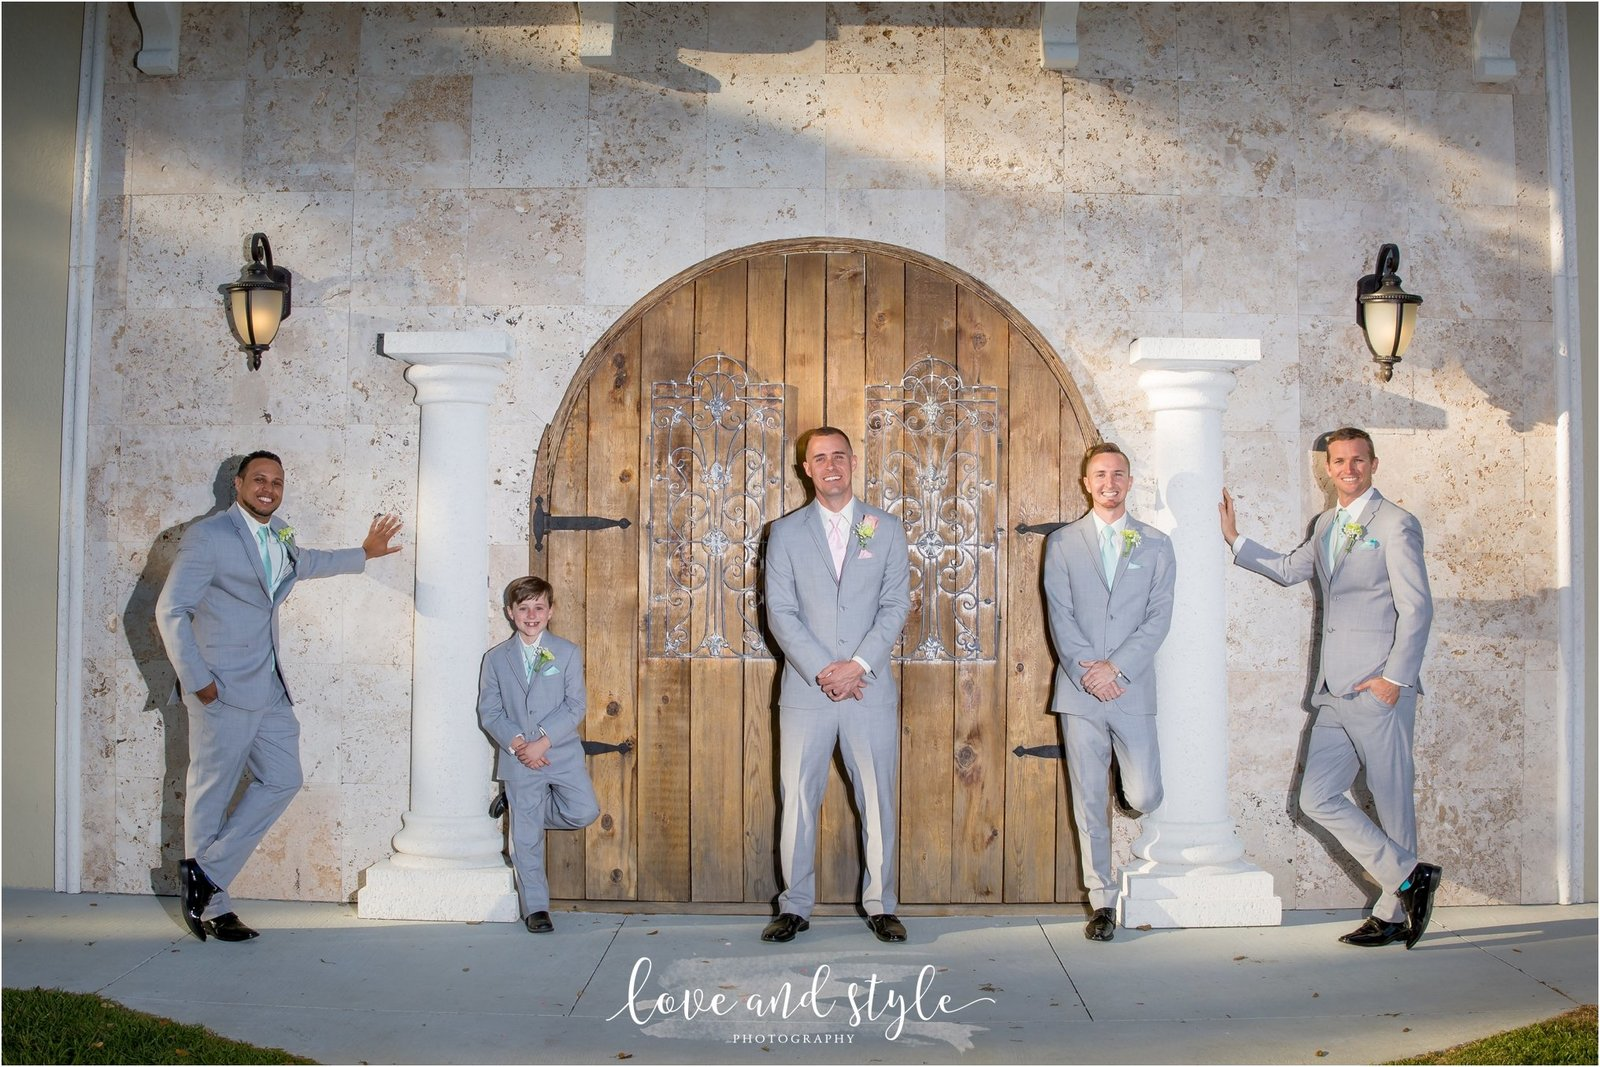 Bakers Ranch Wedding Photography of groom with his groomsmen